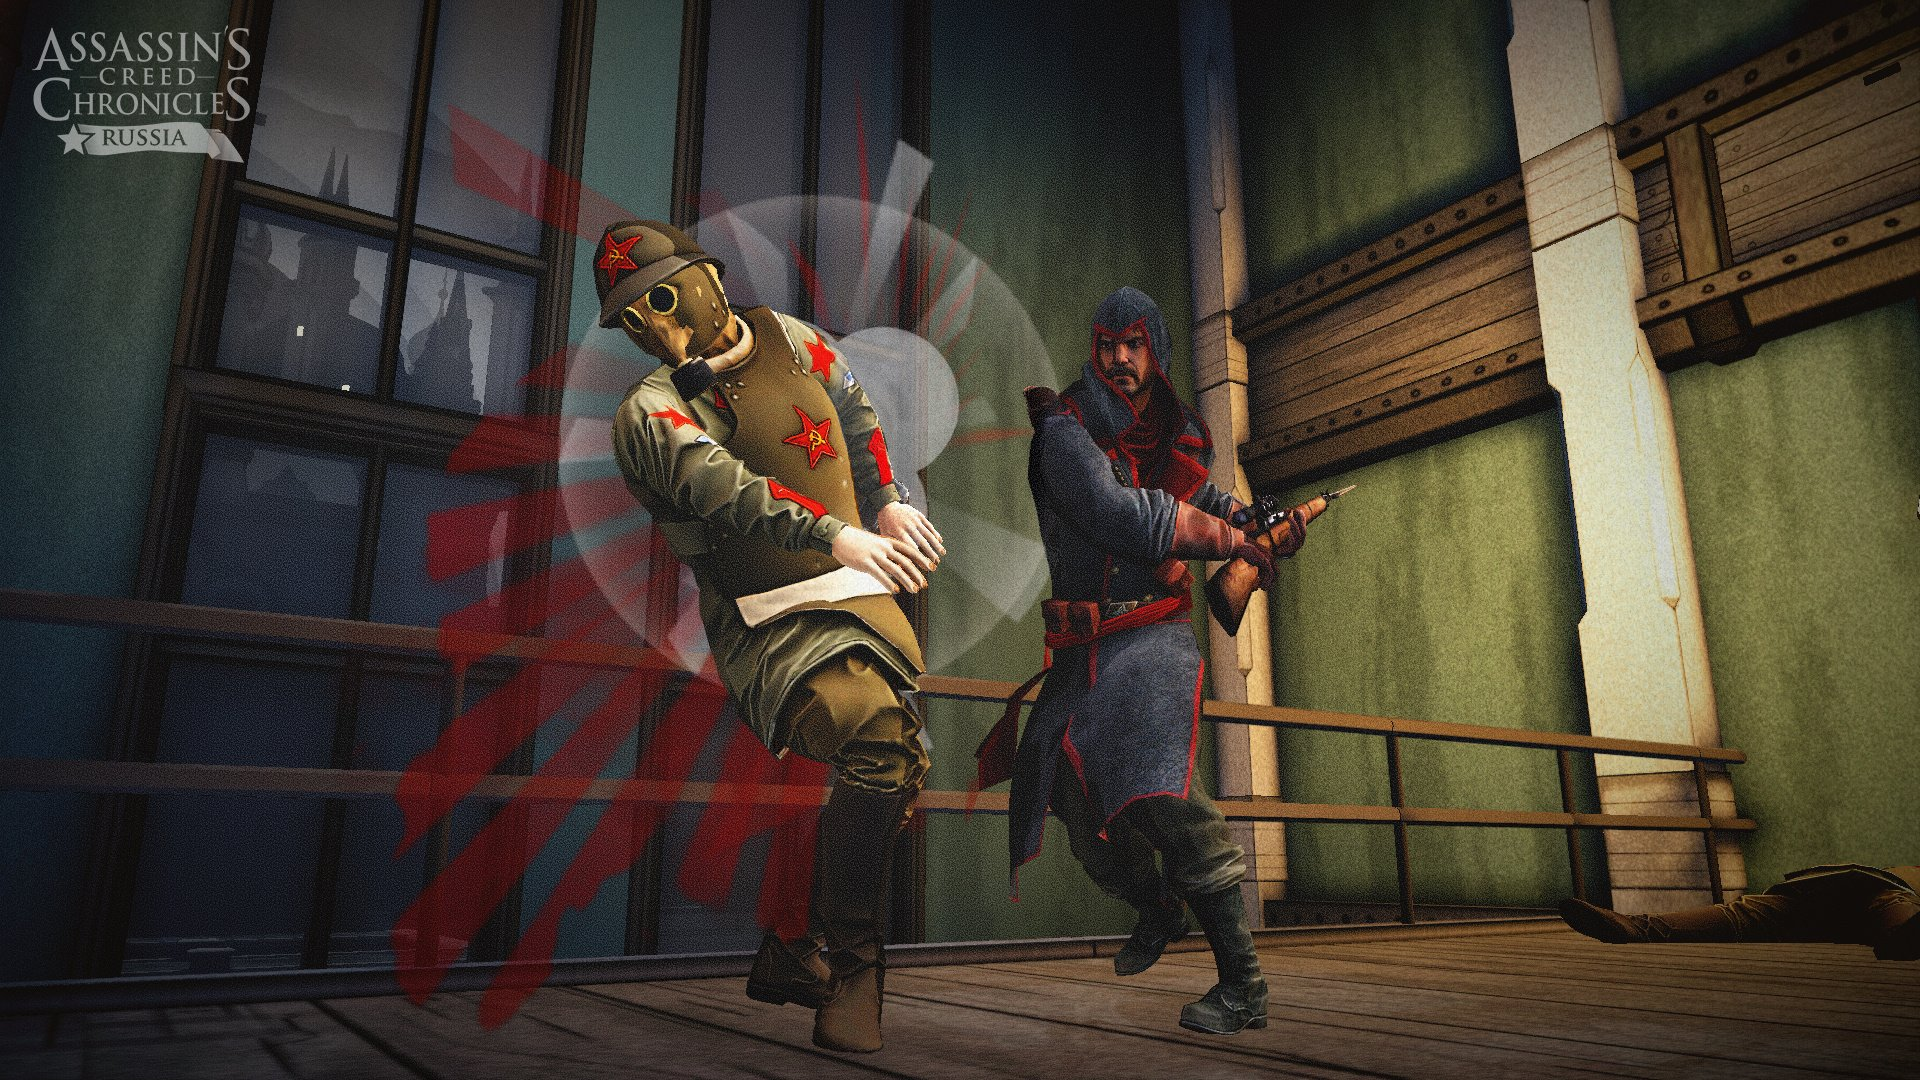 Assassin S Creed Chronicles Russia Review Ps4 Push Square